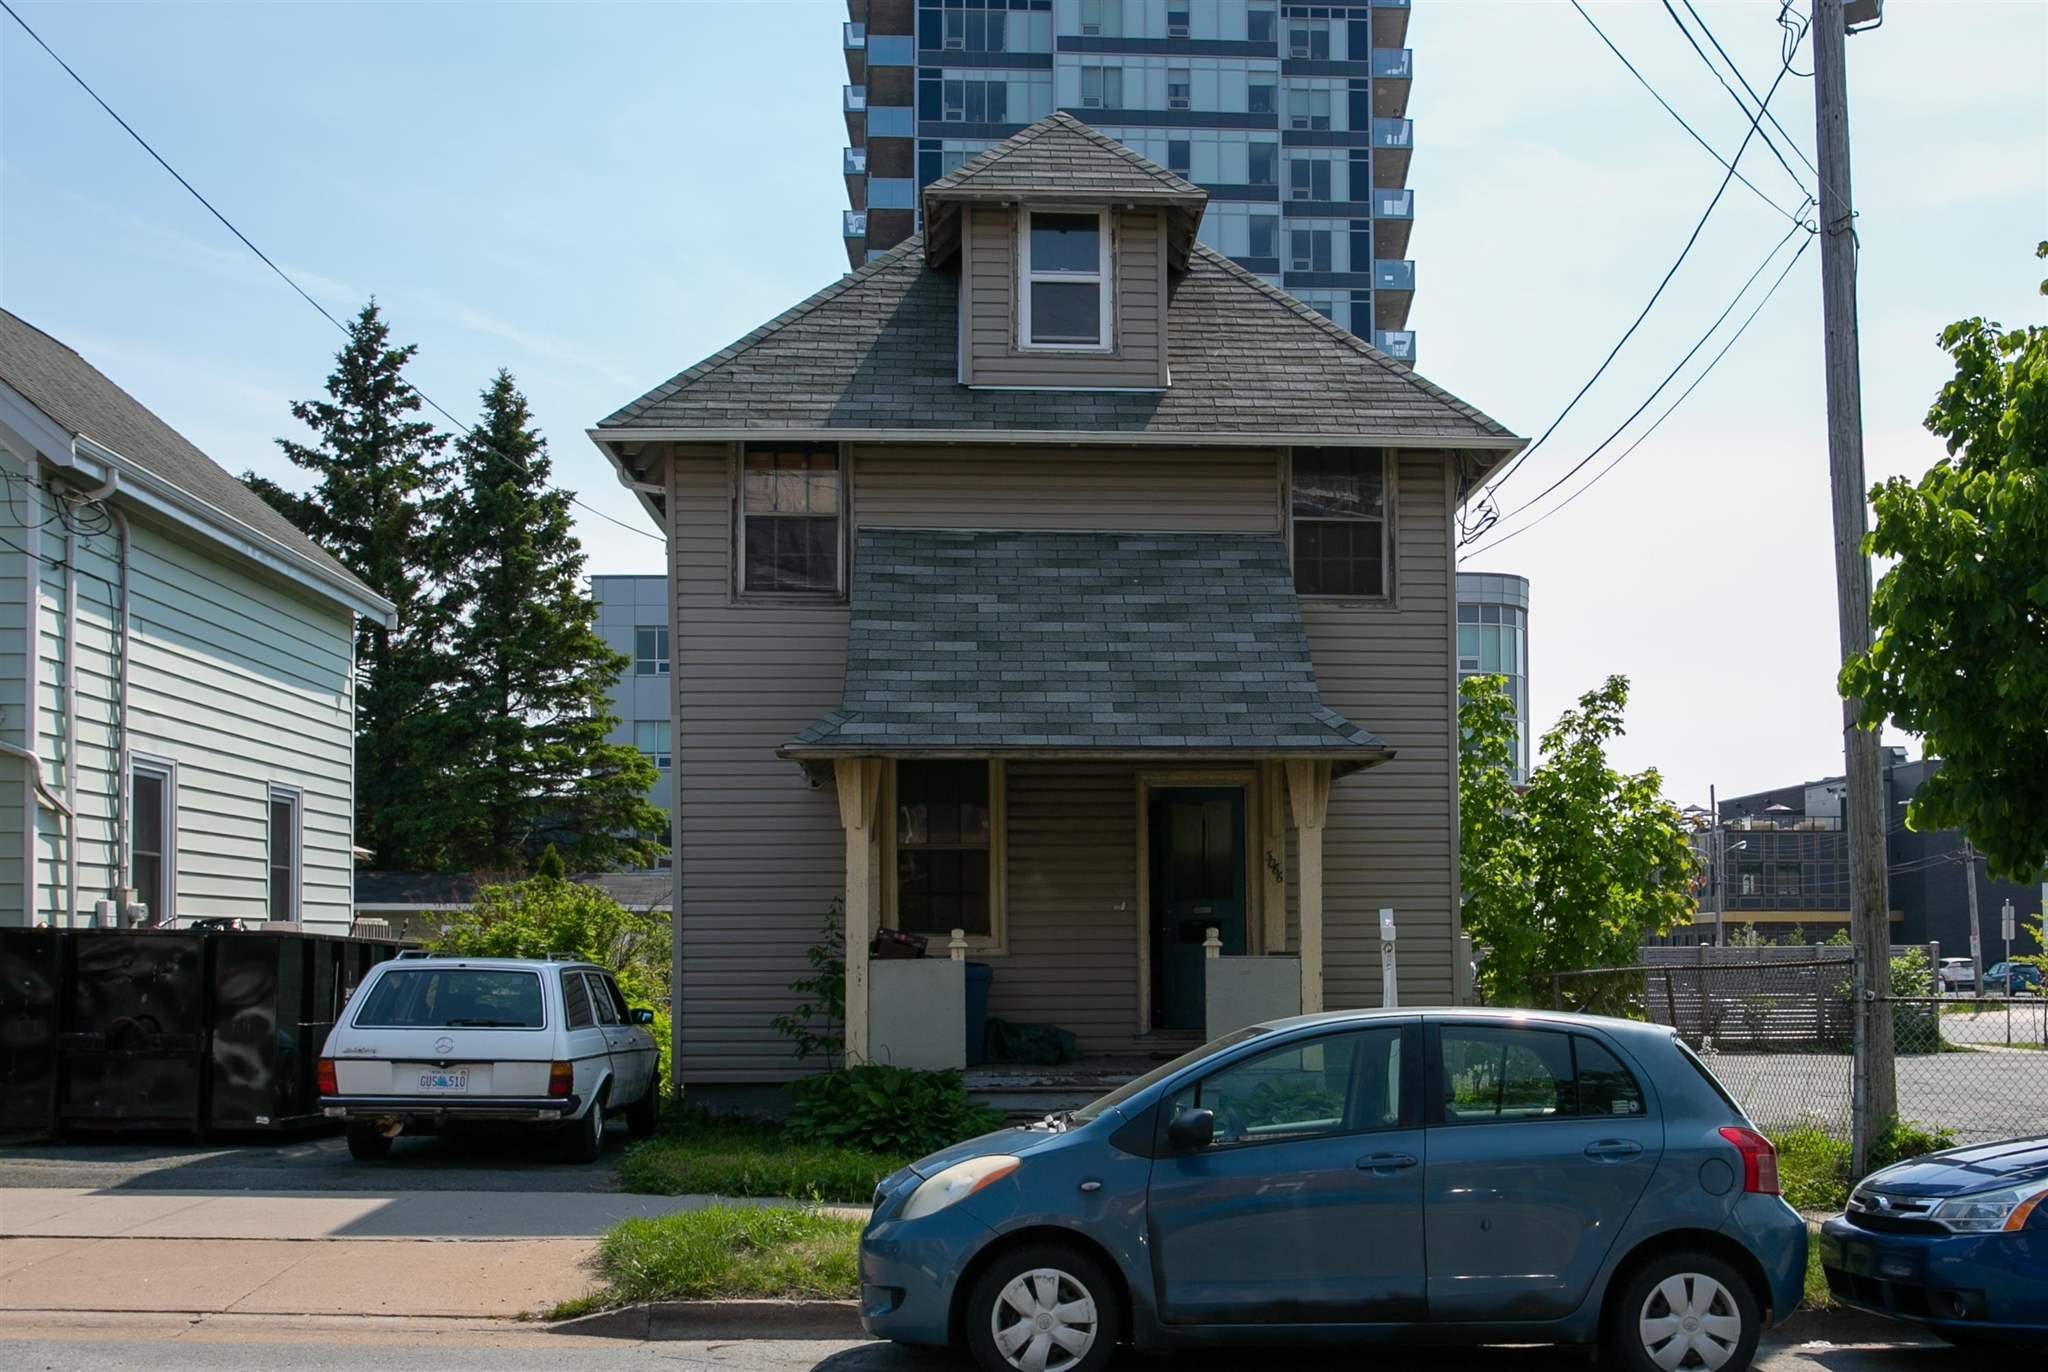 Main Photo: 3066 Agricola Street in Halifax: 1-Halifax Central Multi-Family for sale (Halifax-Dartmouth)  : MLS®# 202114787